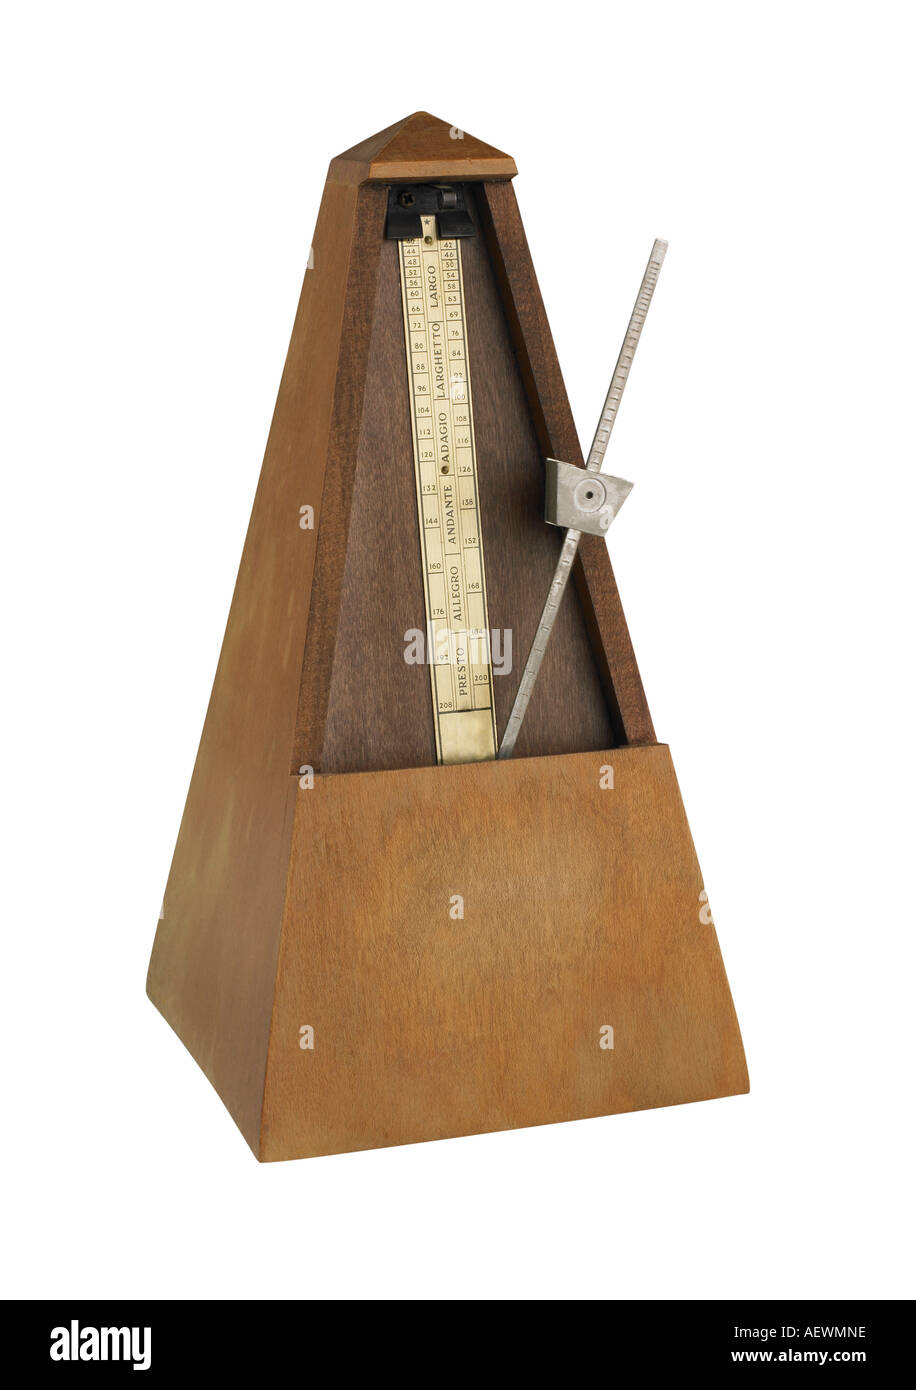 Still life of a metronome - Stock Image